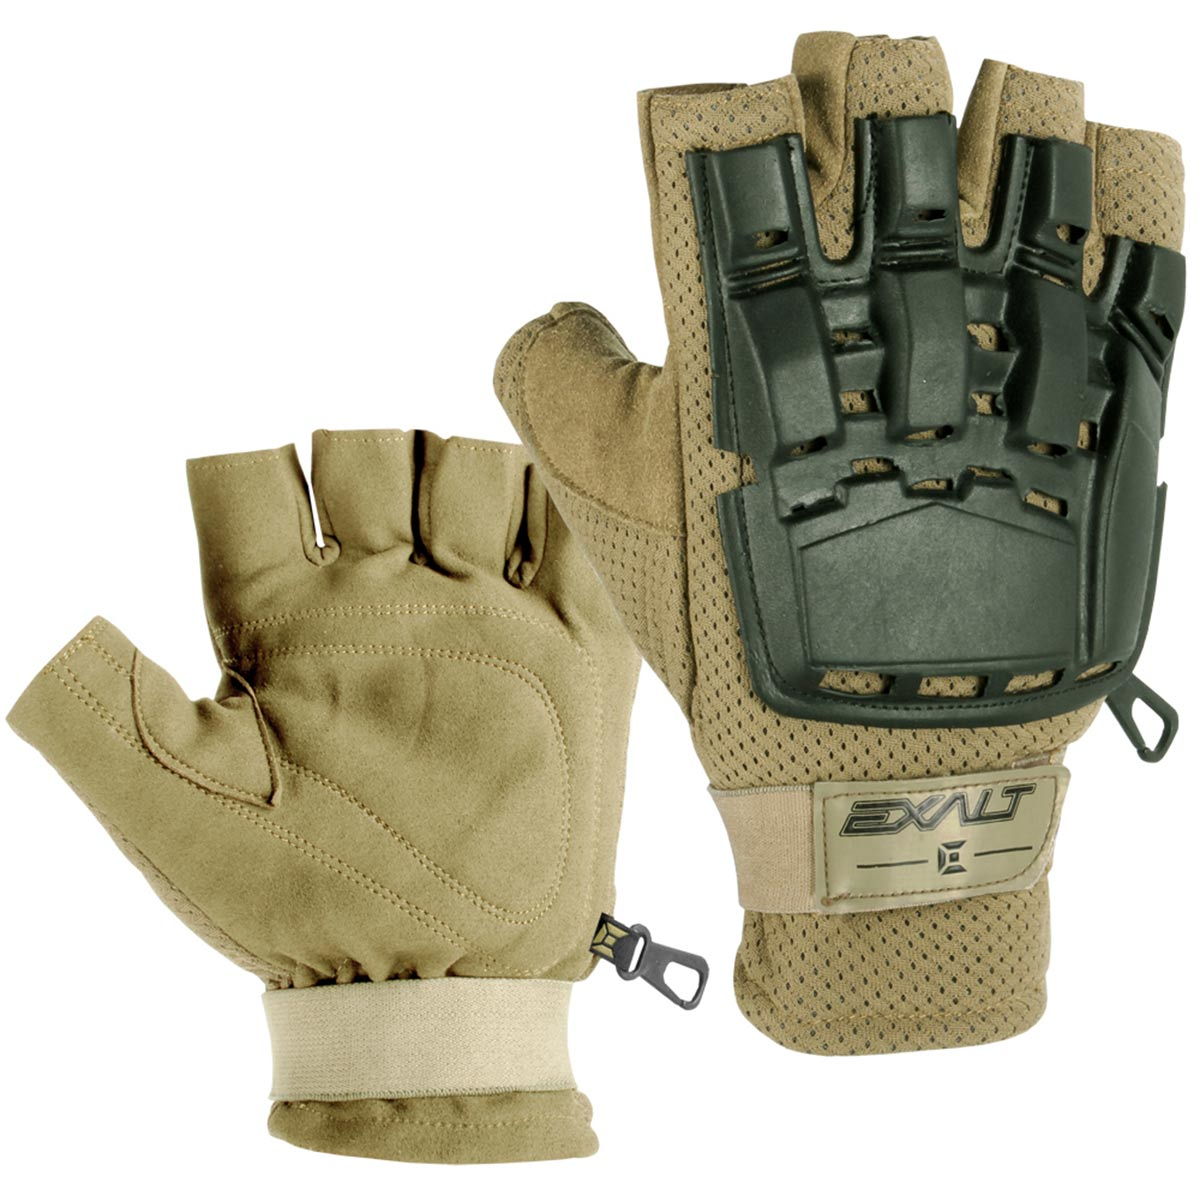 Exalt Paintball Hardshell Gloves - Hard Back Fingerless - Tan